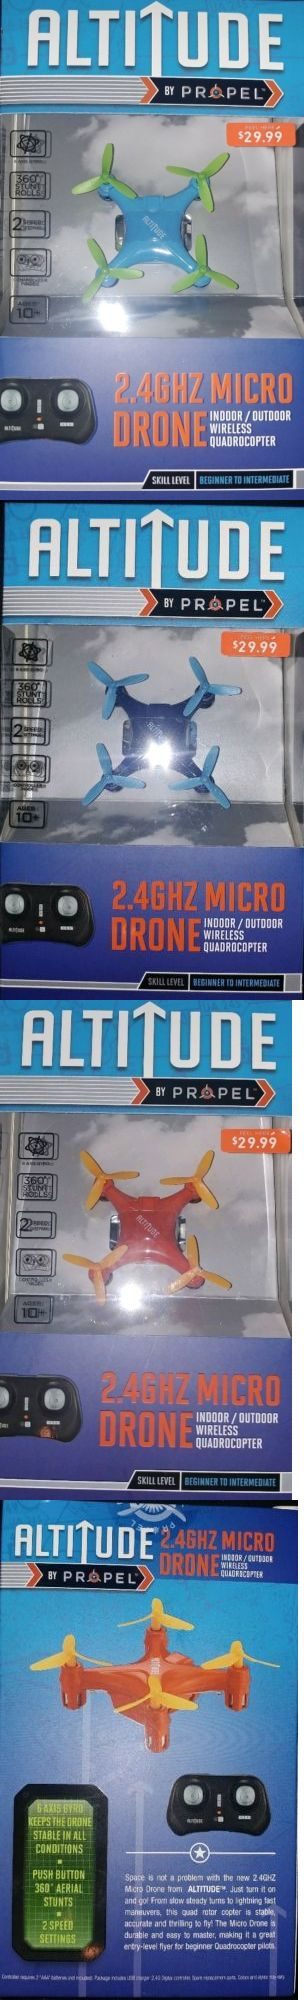 Radio Control 51029: Lot Of 6 Altitude Micro Rc Drones Rtr!?? Quality 6 Axis 2 Speed Quadrocopters! -> BUY IT NOW ONLY: $65.49 on eBay!